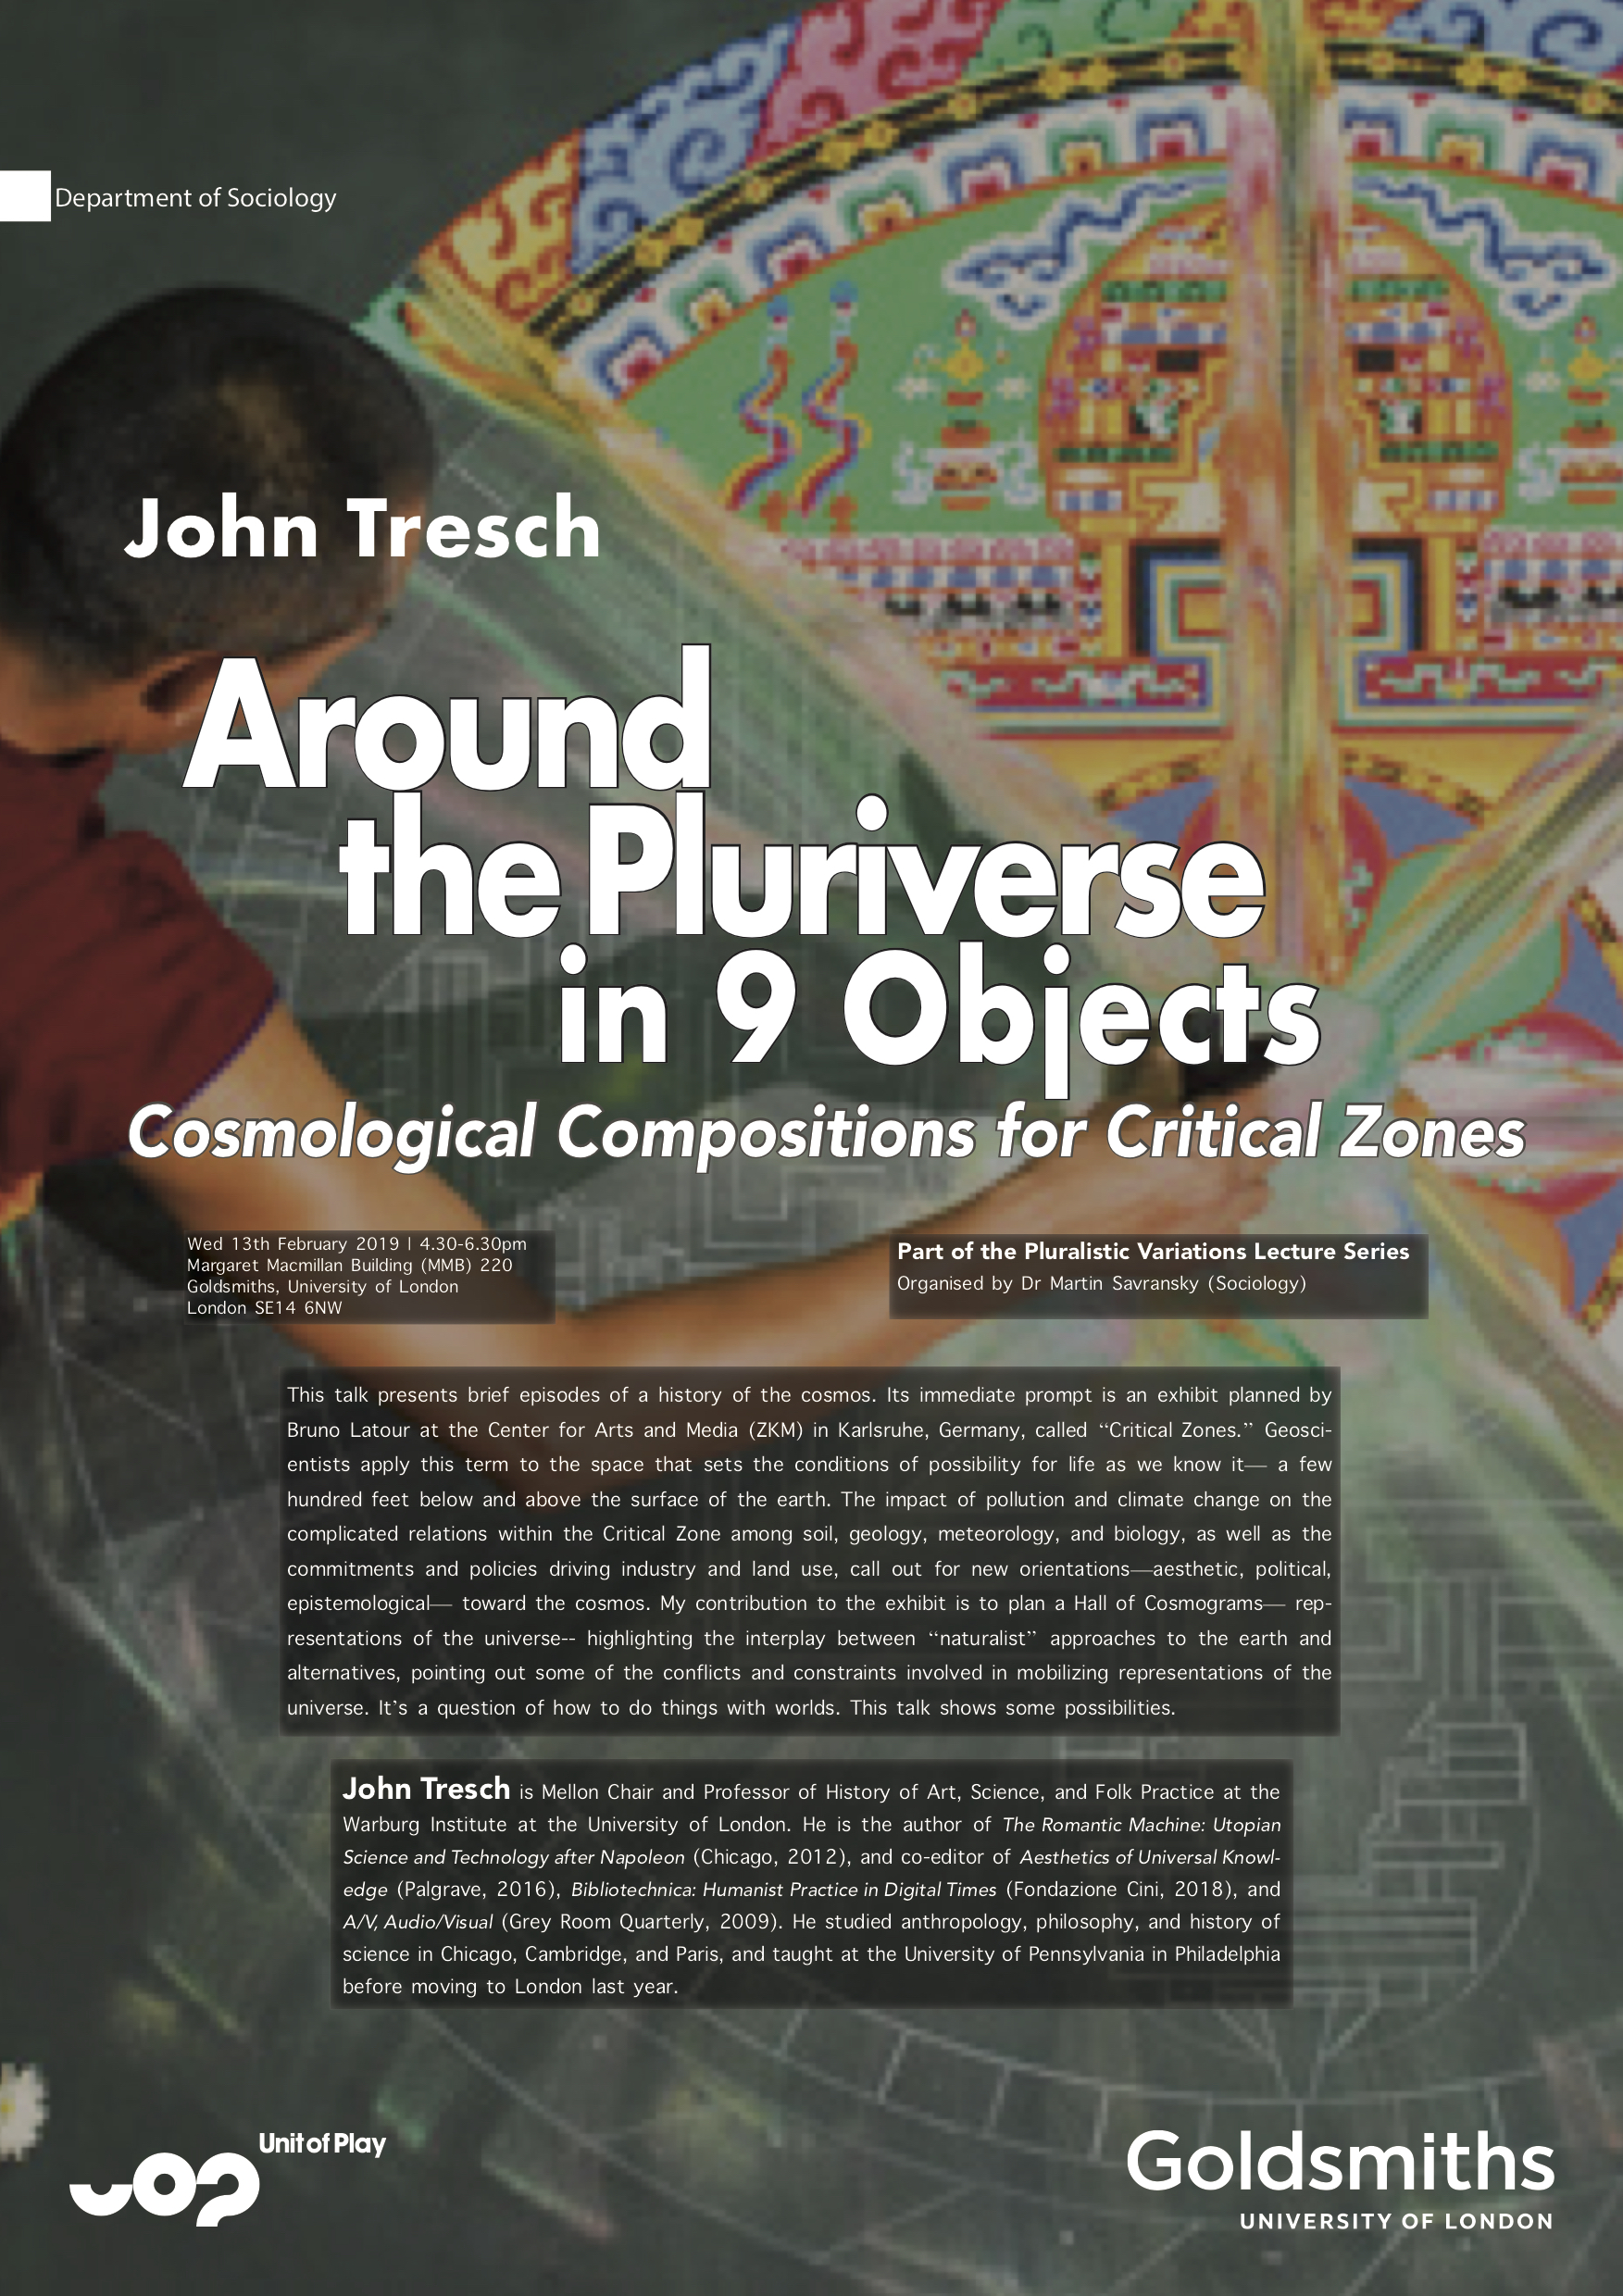 John Tresch, Around the Pluriverse in 9 Objects Martin Savransky